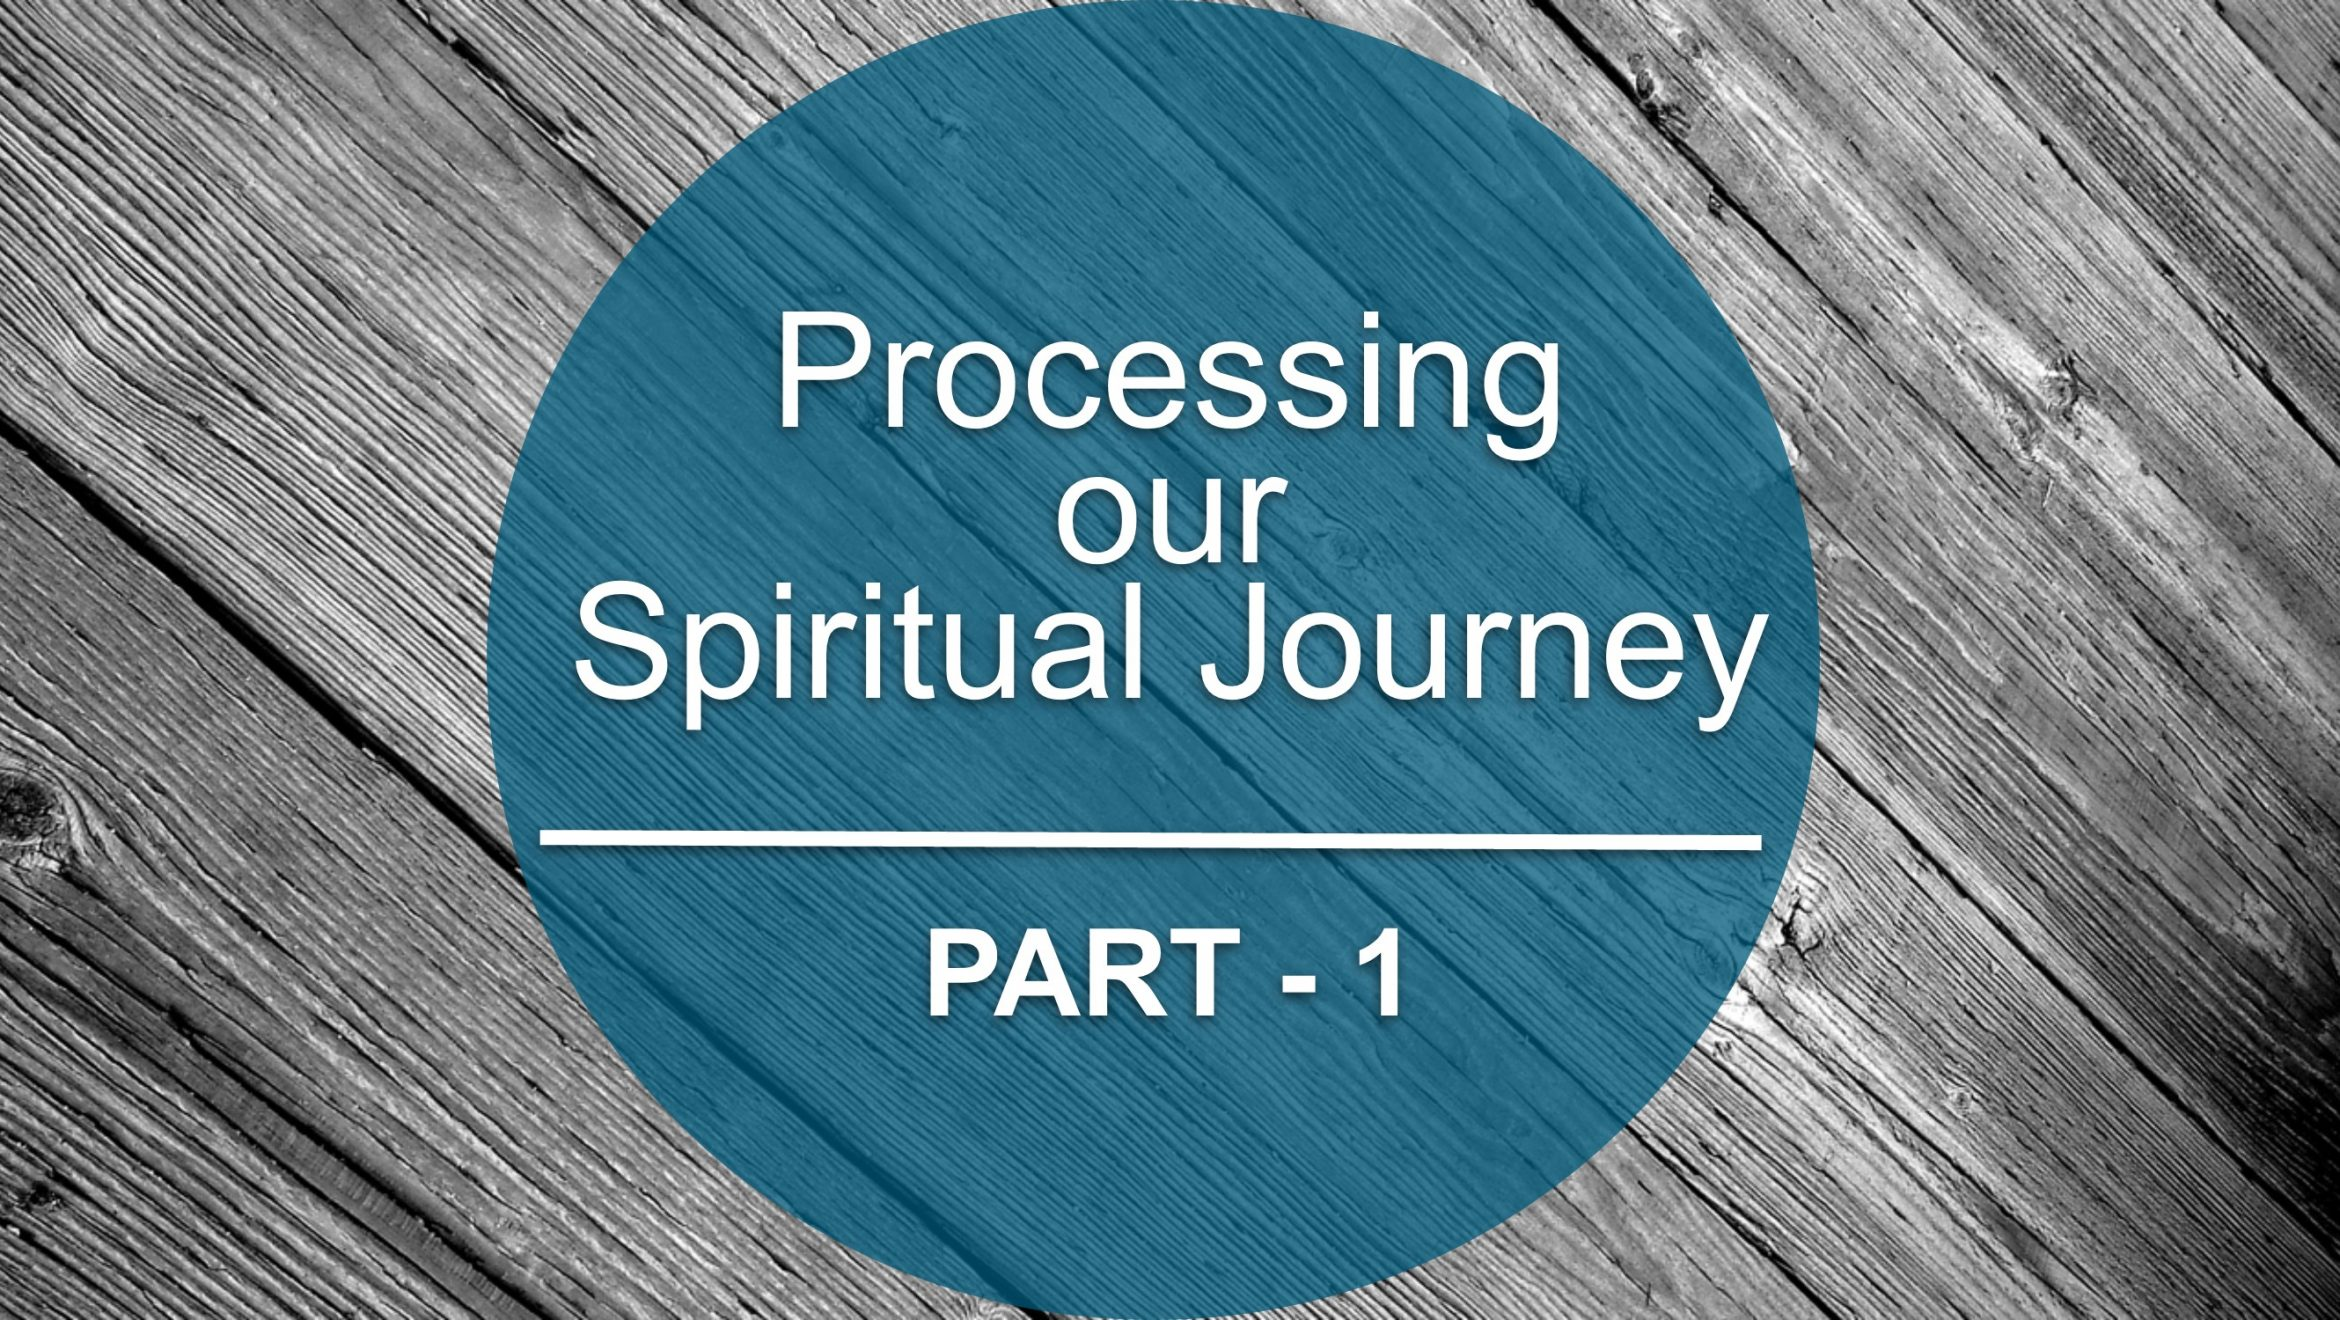 Processing our Spiritual Journey Part 1<br/>David Munroe